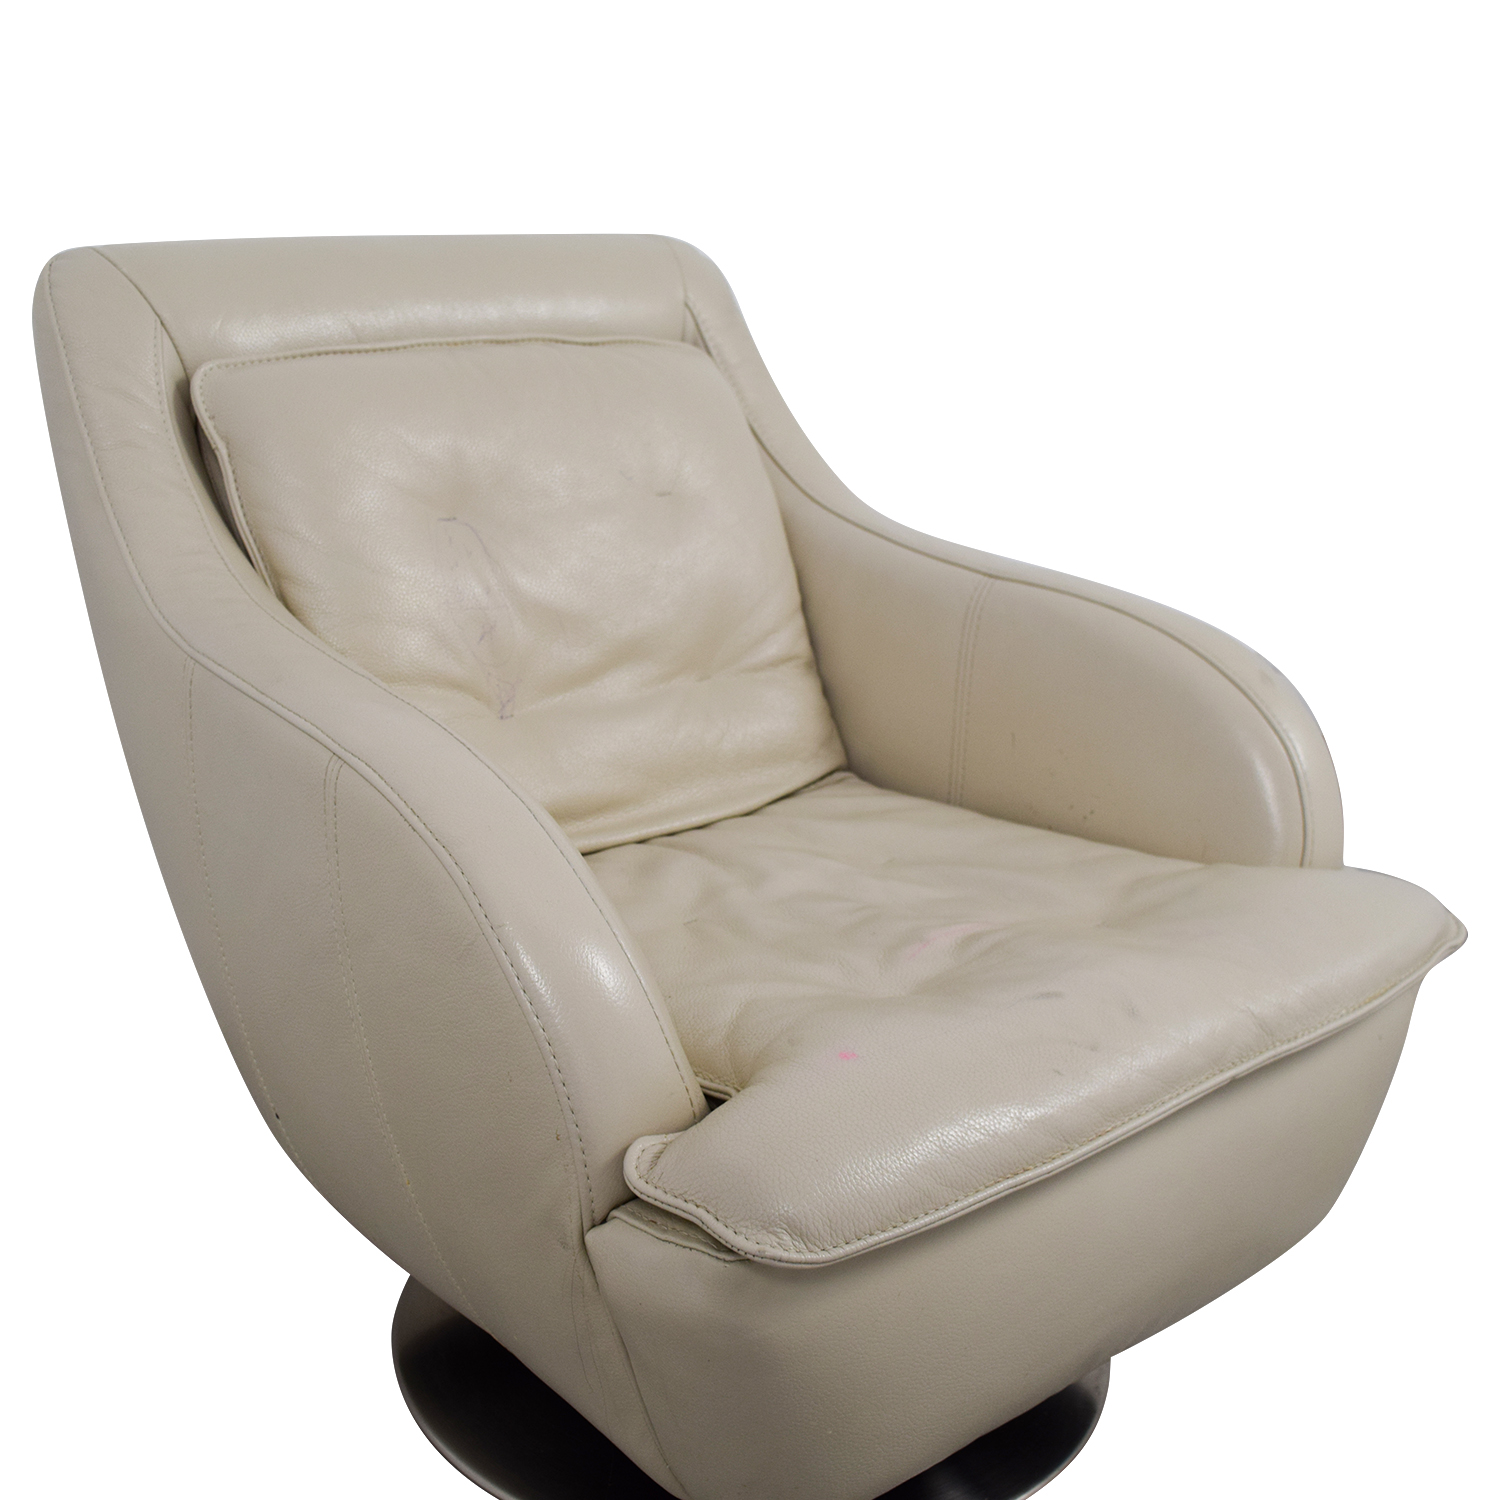 buy Raymour & Flanigan White Leather Accent Chair Raymour & Flanigan Accent Chairs